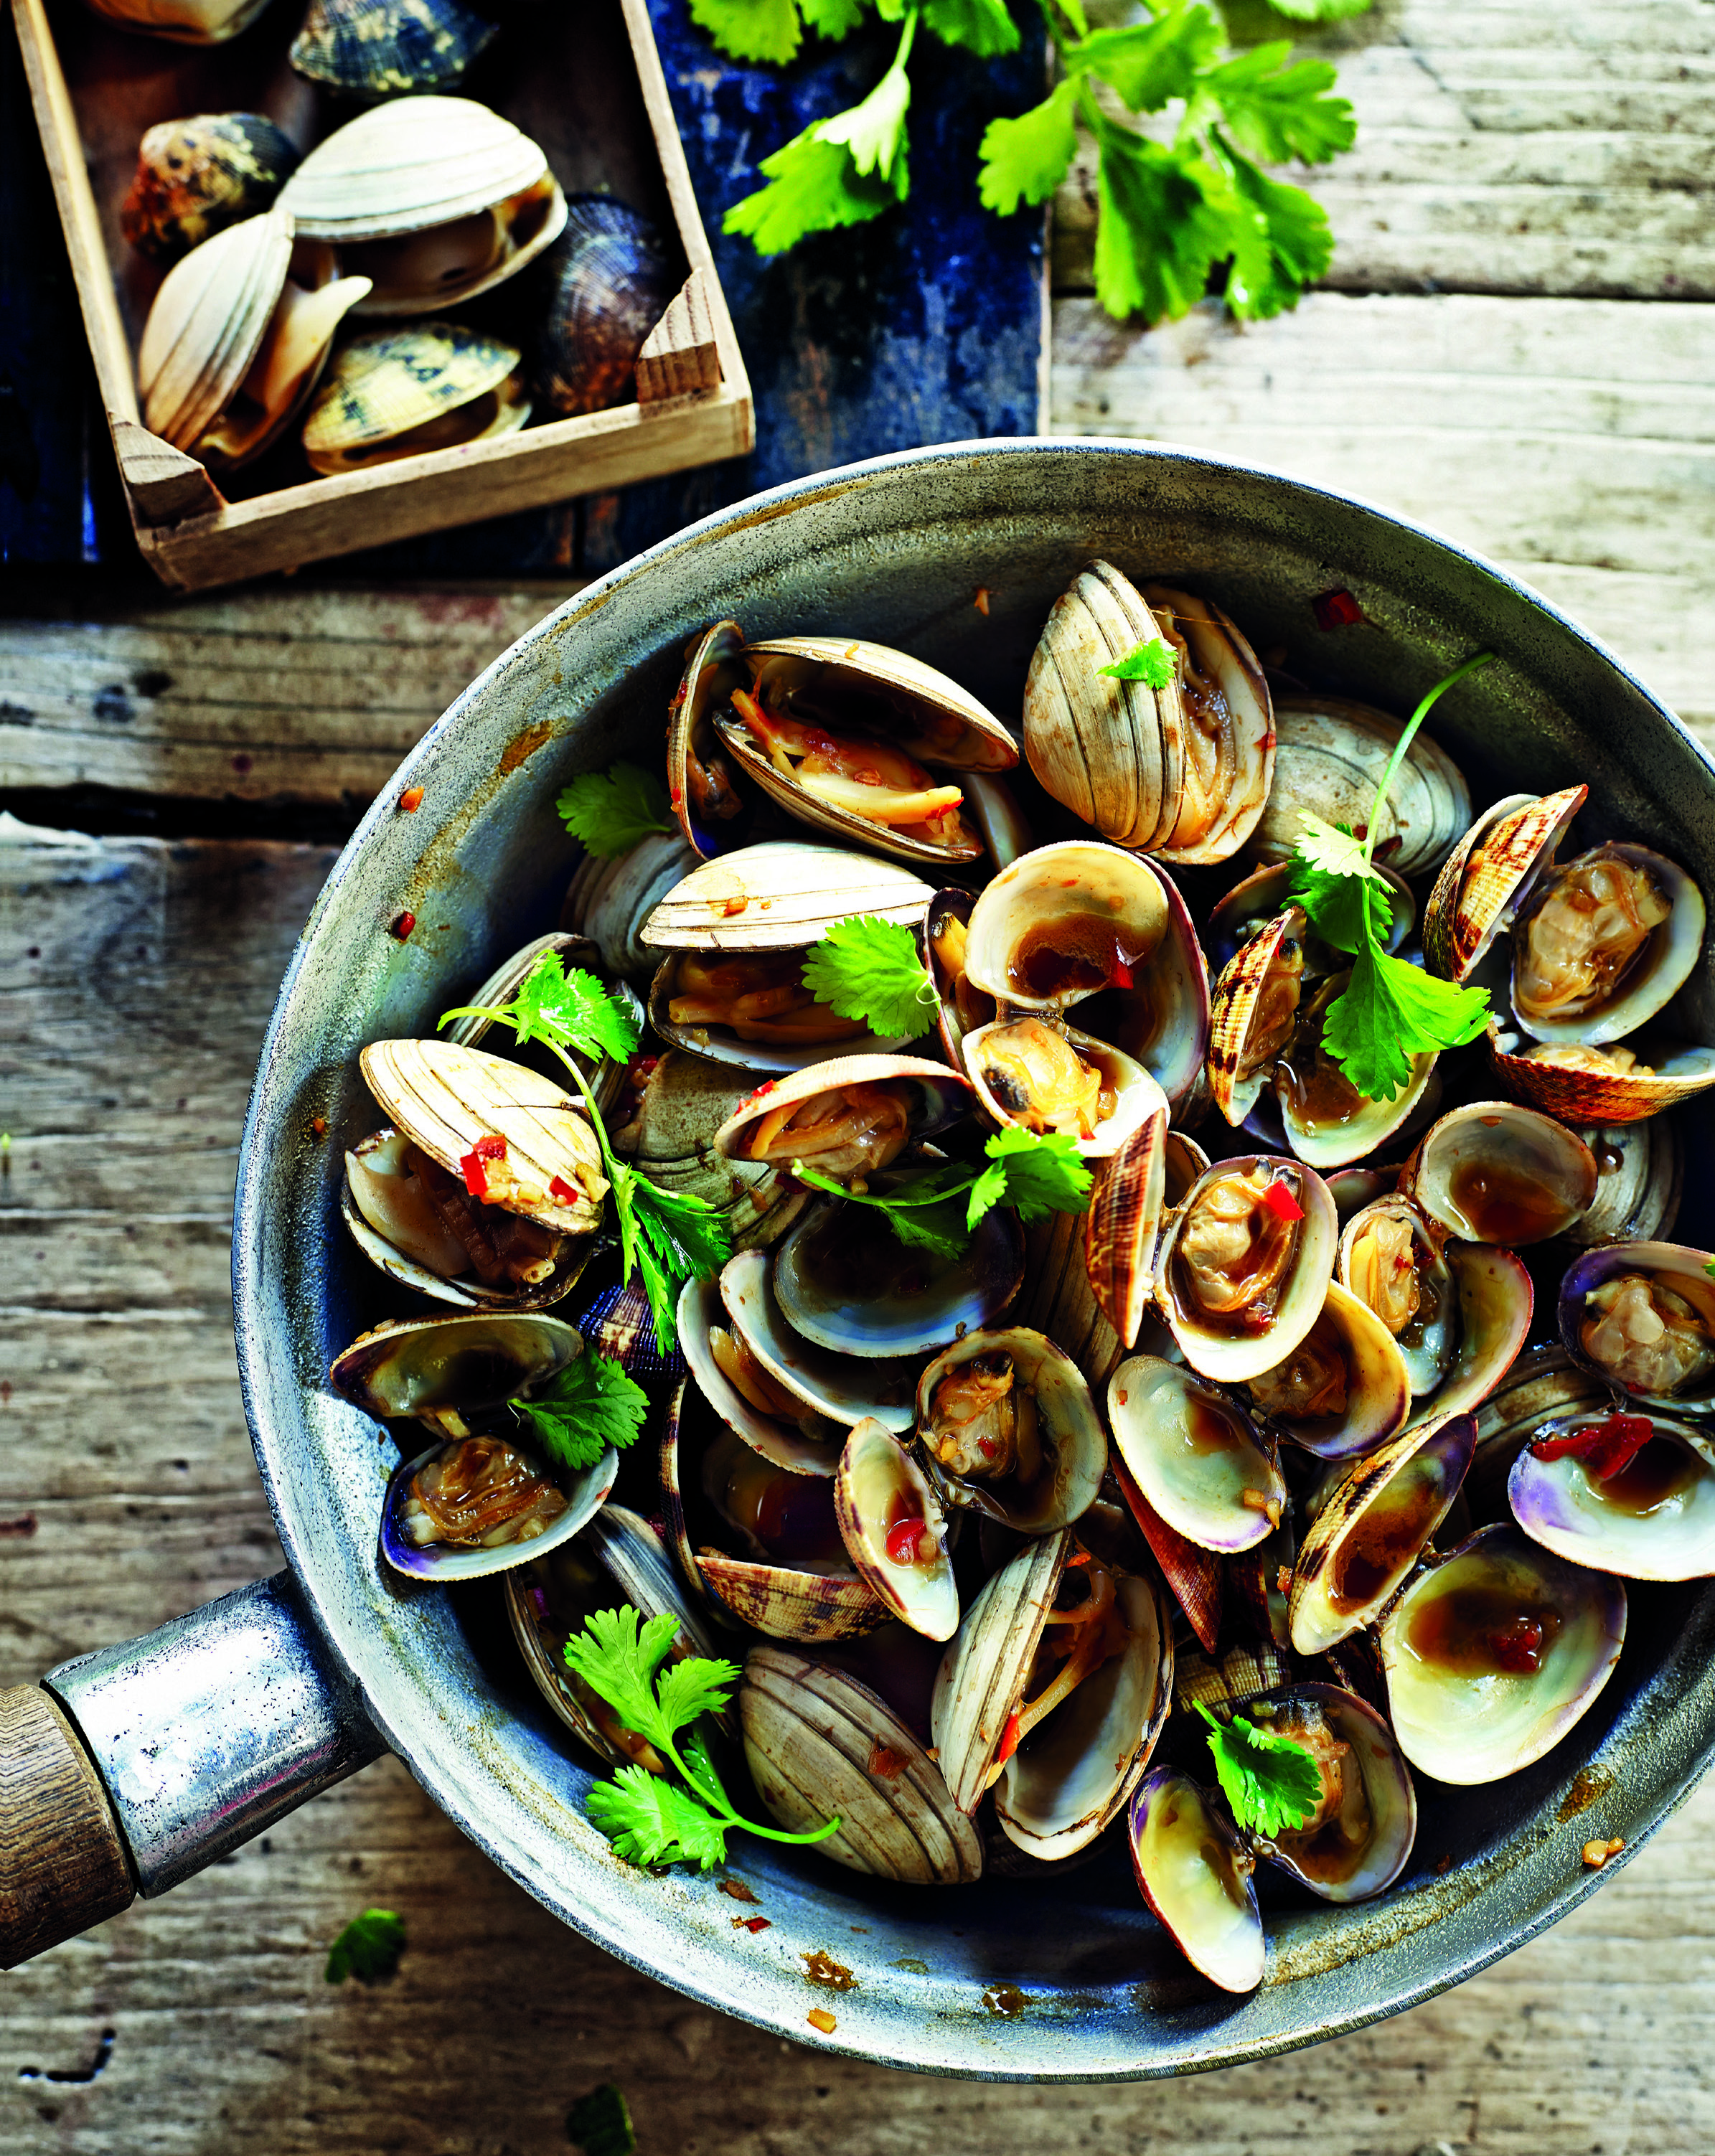 Chilli and garlic 'wealthy' clams